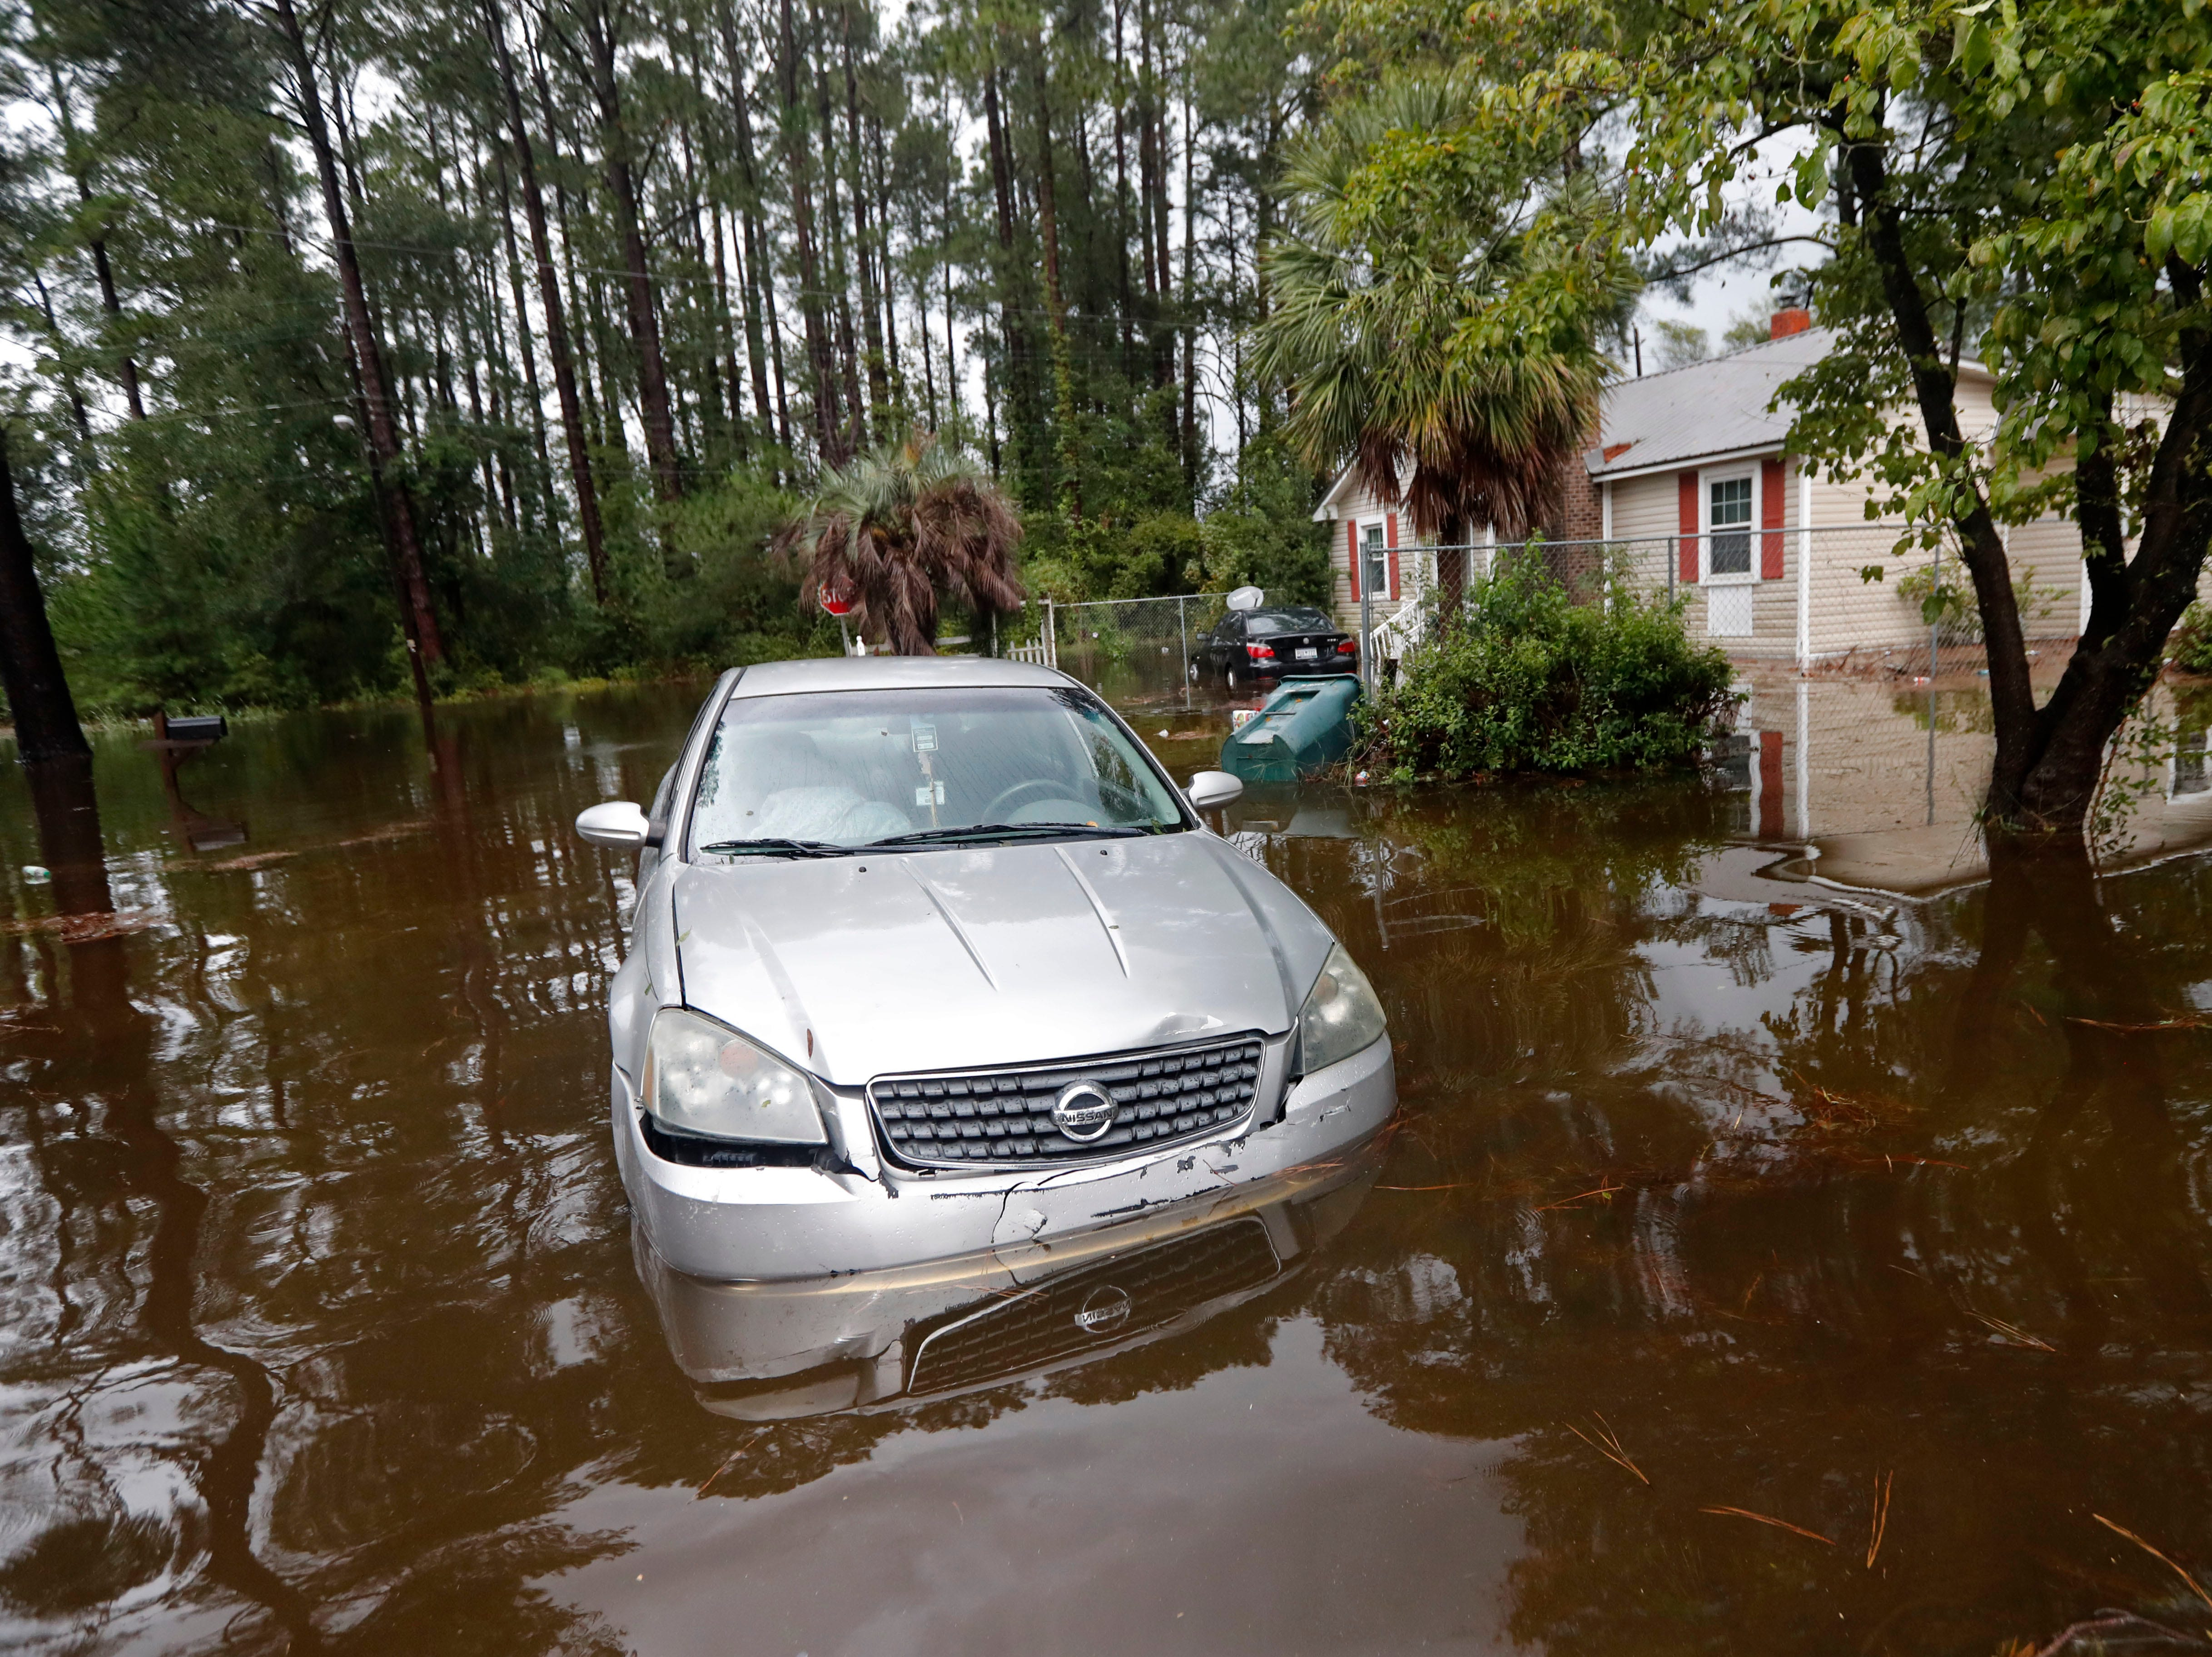 A car sits in floodwaters from Hurricane Florence in Marion, S.C., Sunday, Sept. 16, 2018.